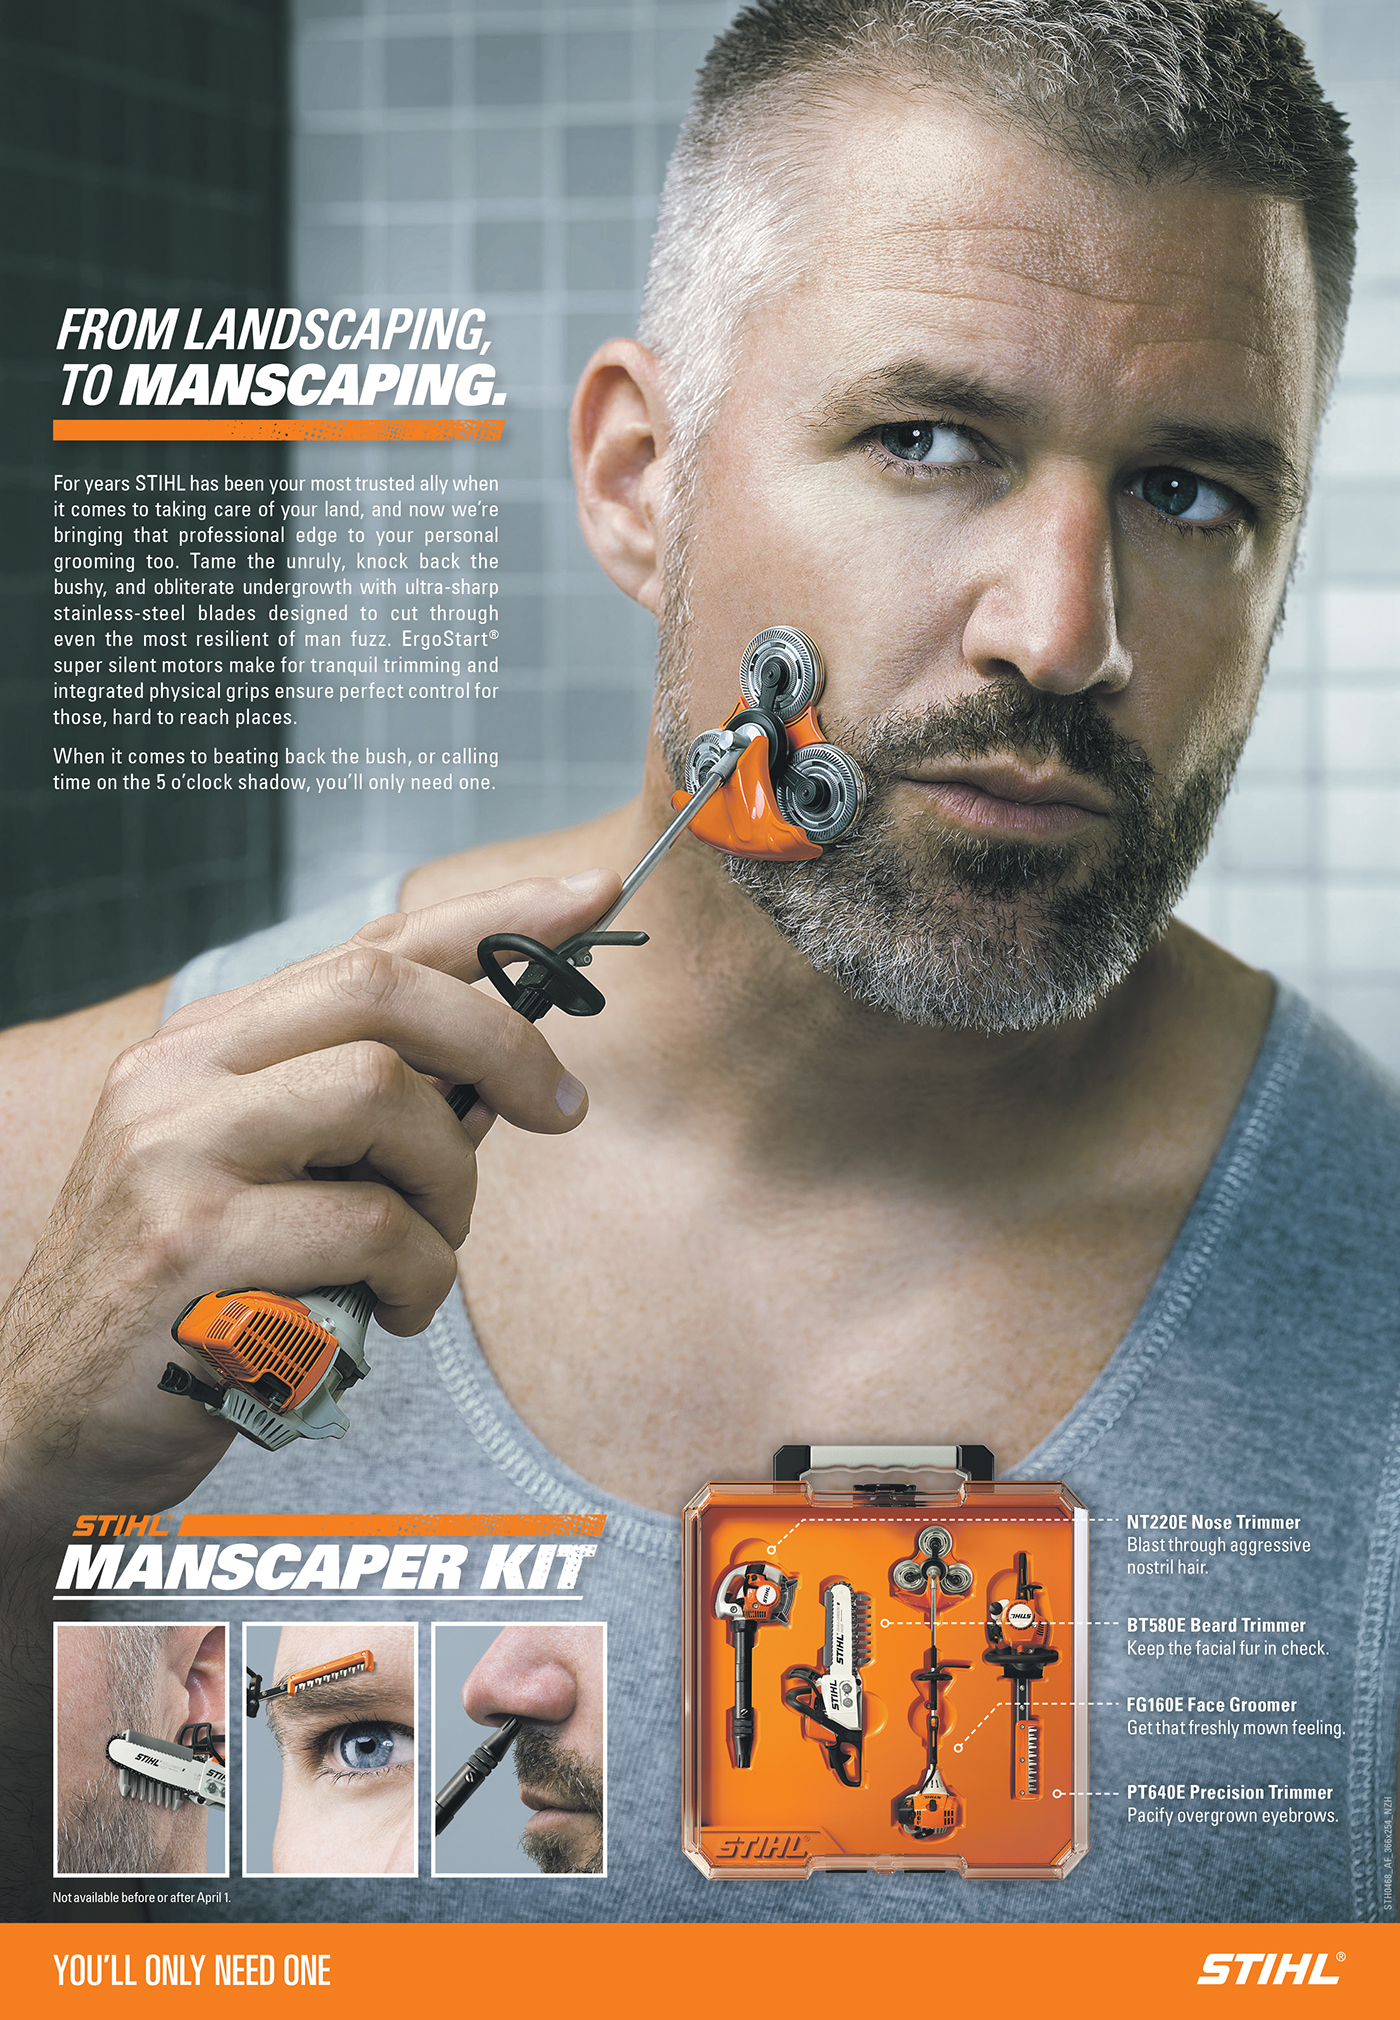 stihl manscaping kit  behance